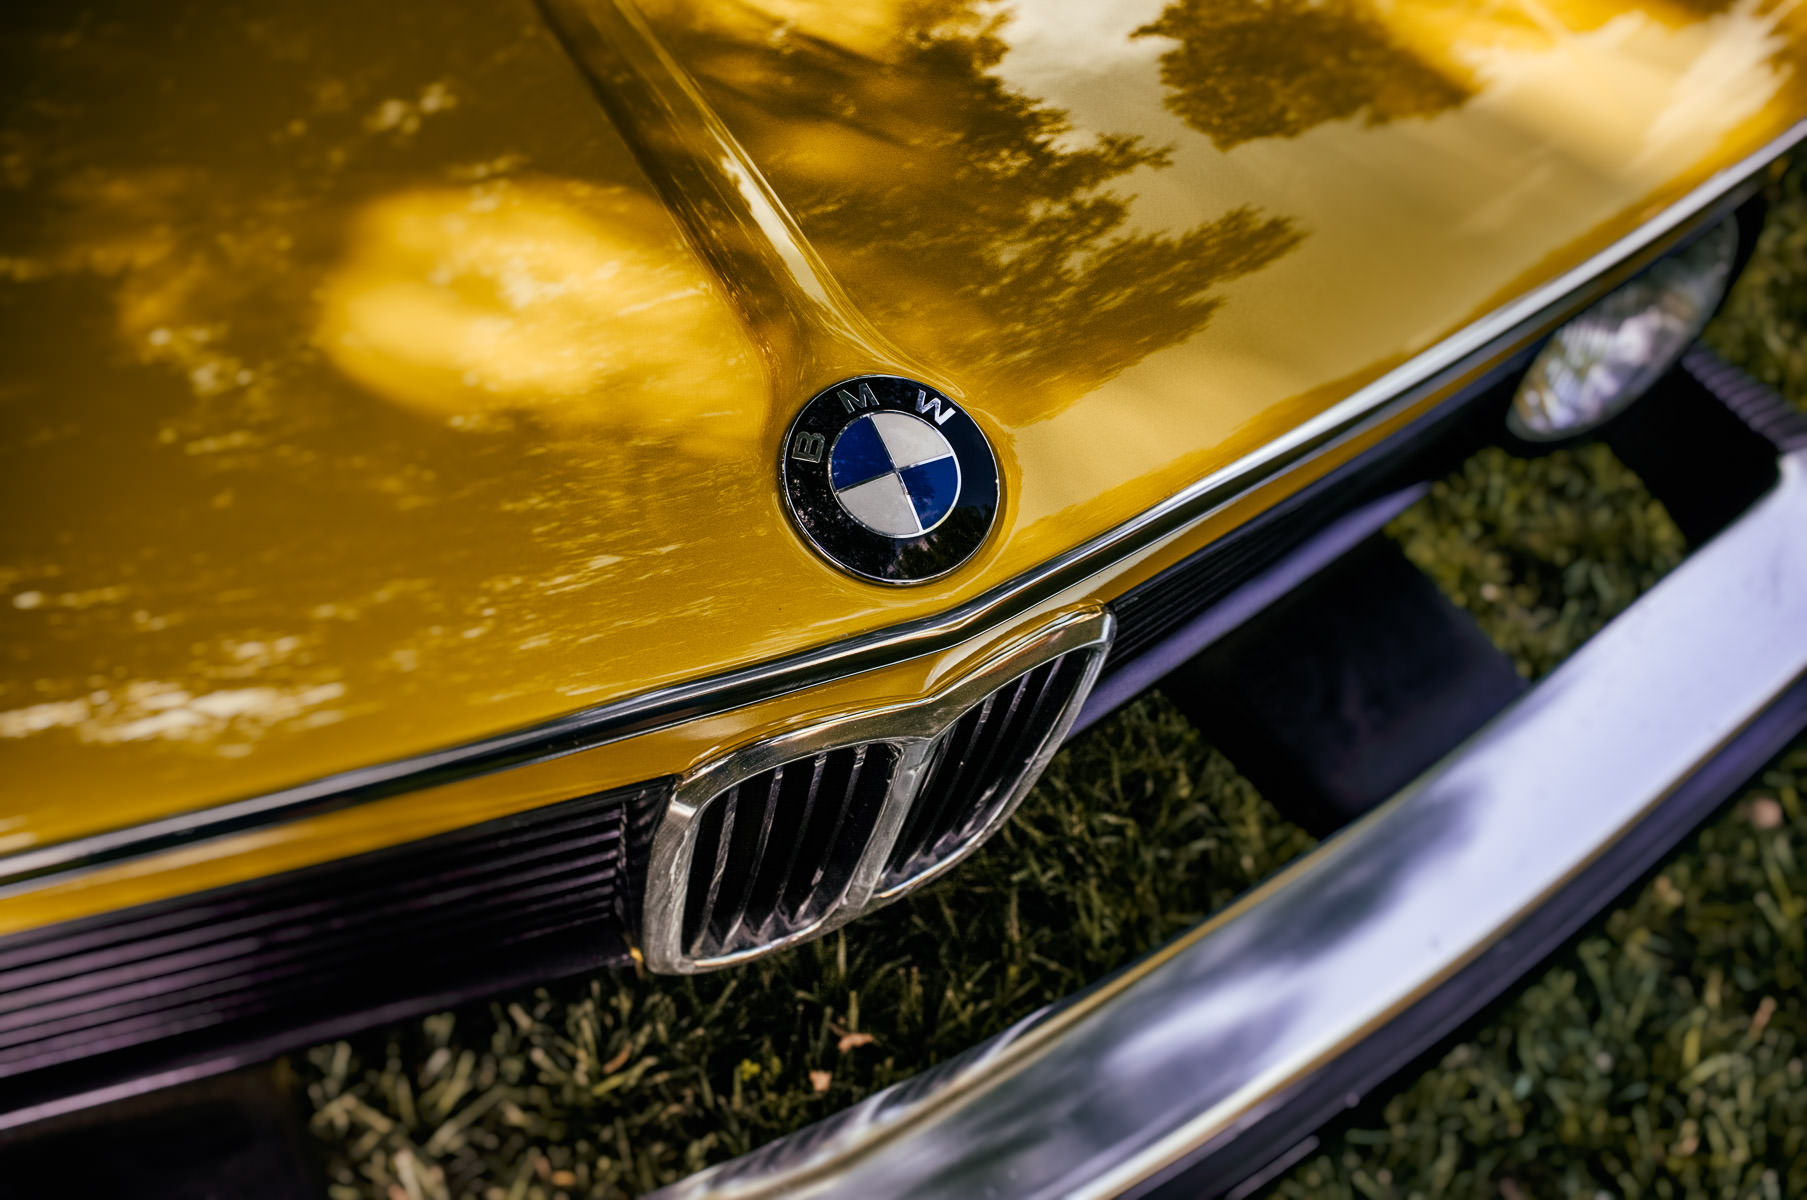 The badge of a classic BMW 2002 at the Autos in the Park event at Dallas' Cooper Aerobics Center.